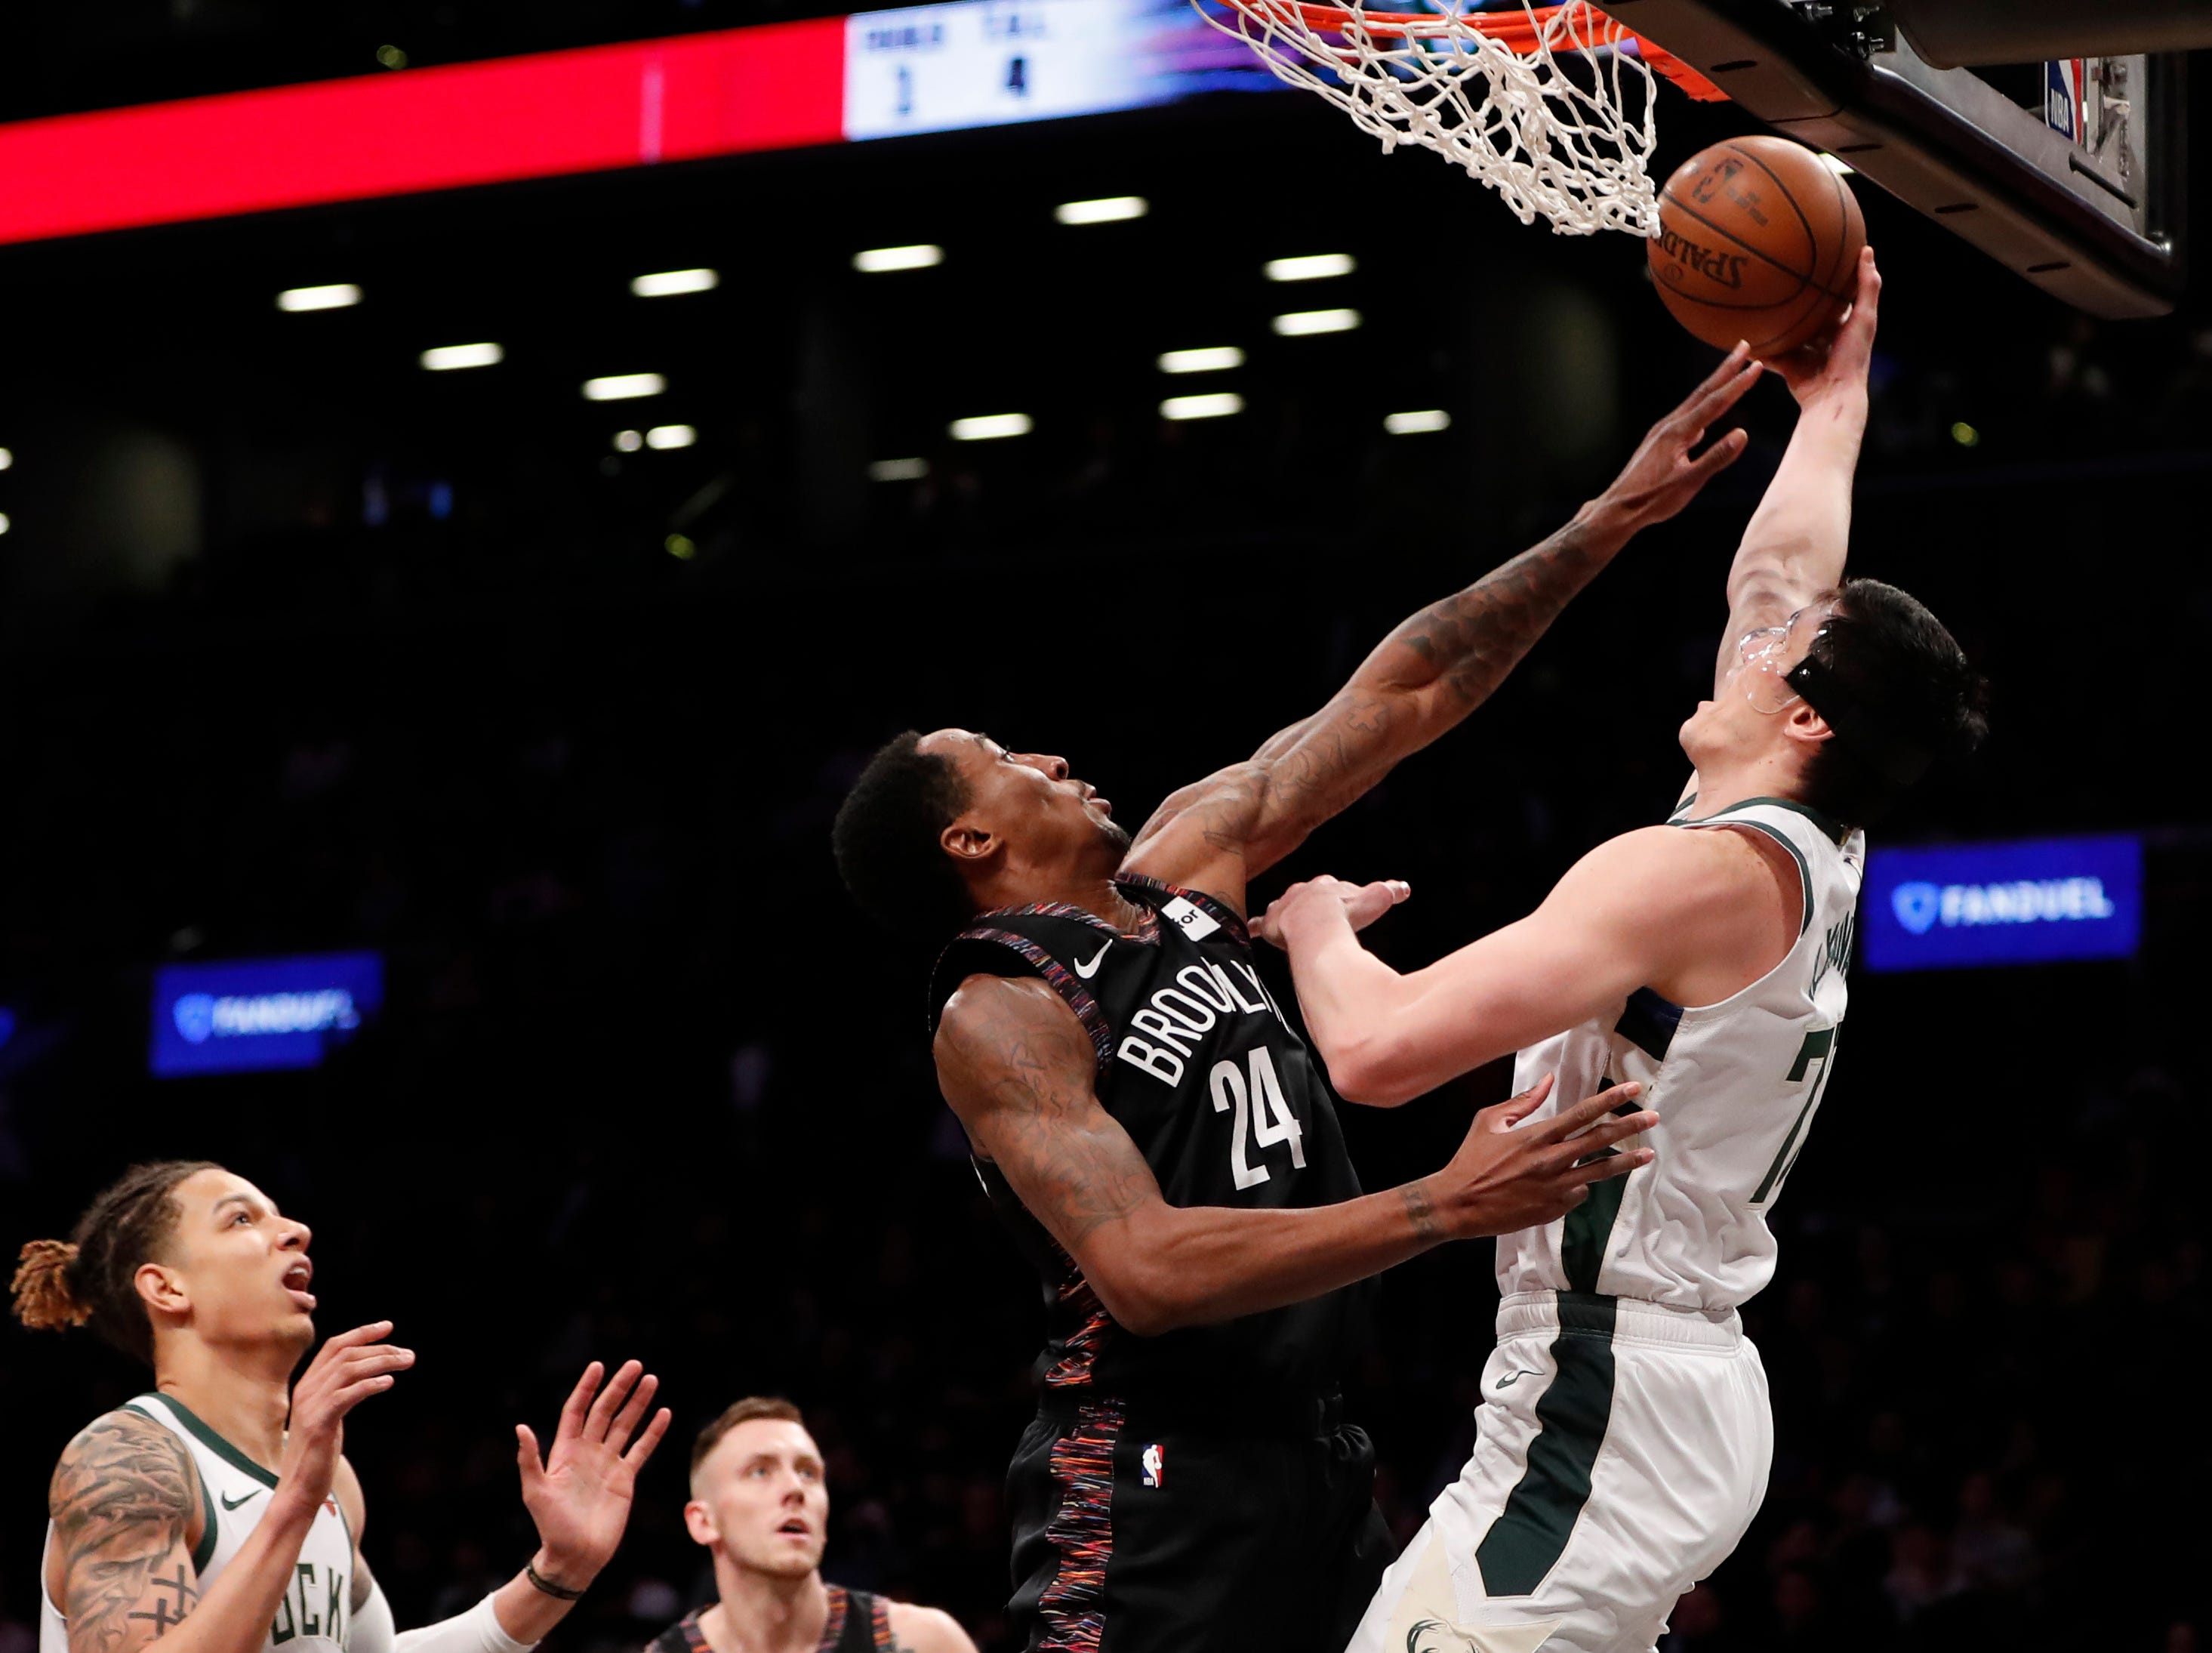 Bucks forward Ersan Ilyasova tries to get a shot over the block attempt of Nets forward Rondae Hollis-Jefferson during the second half Monday.